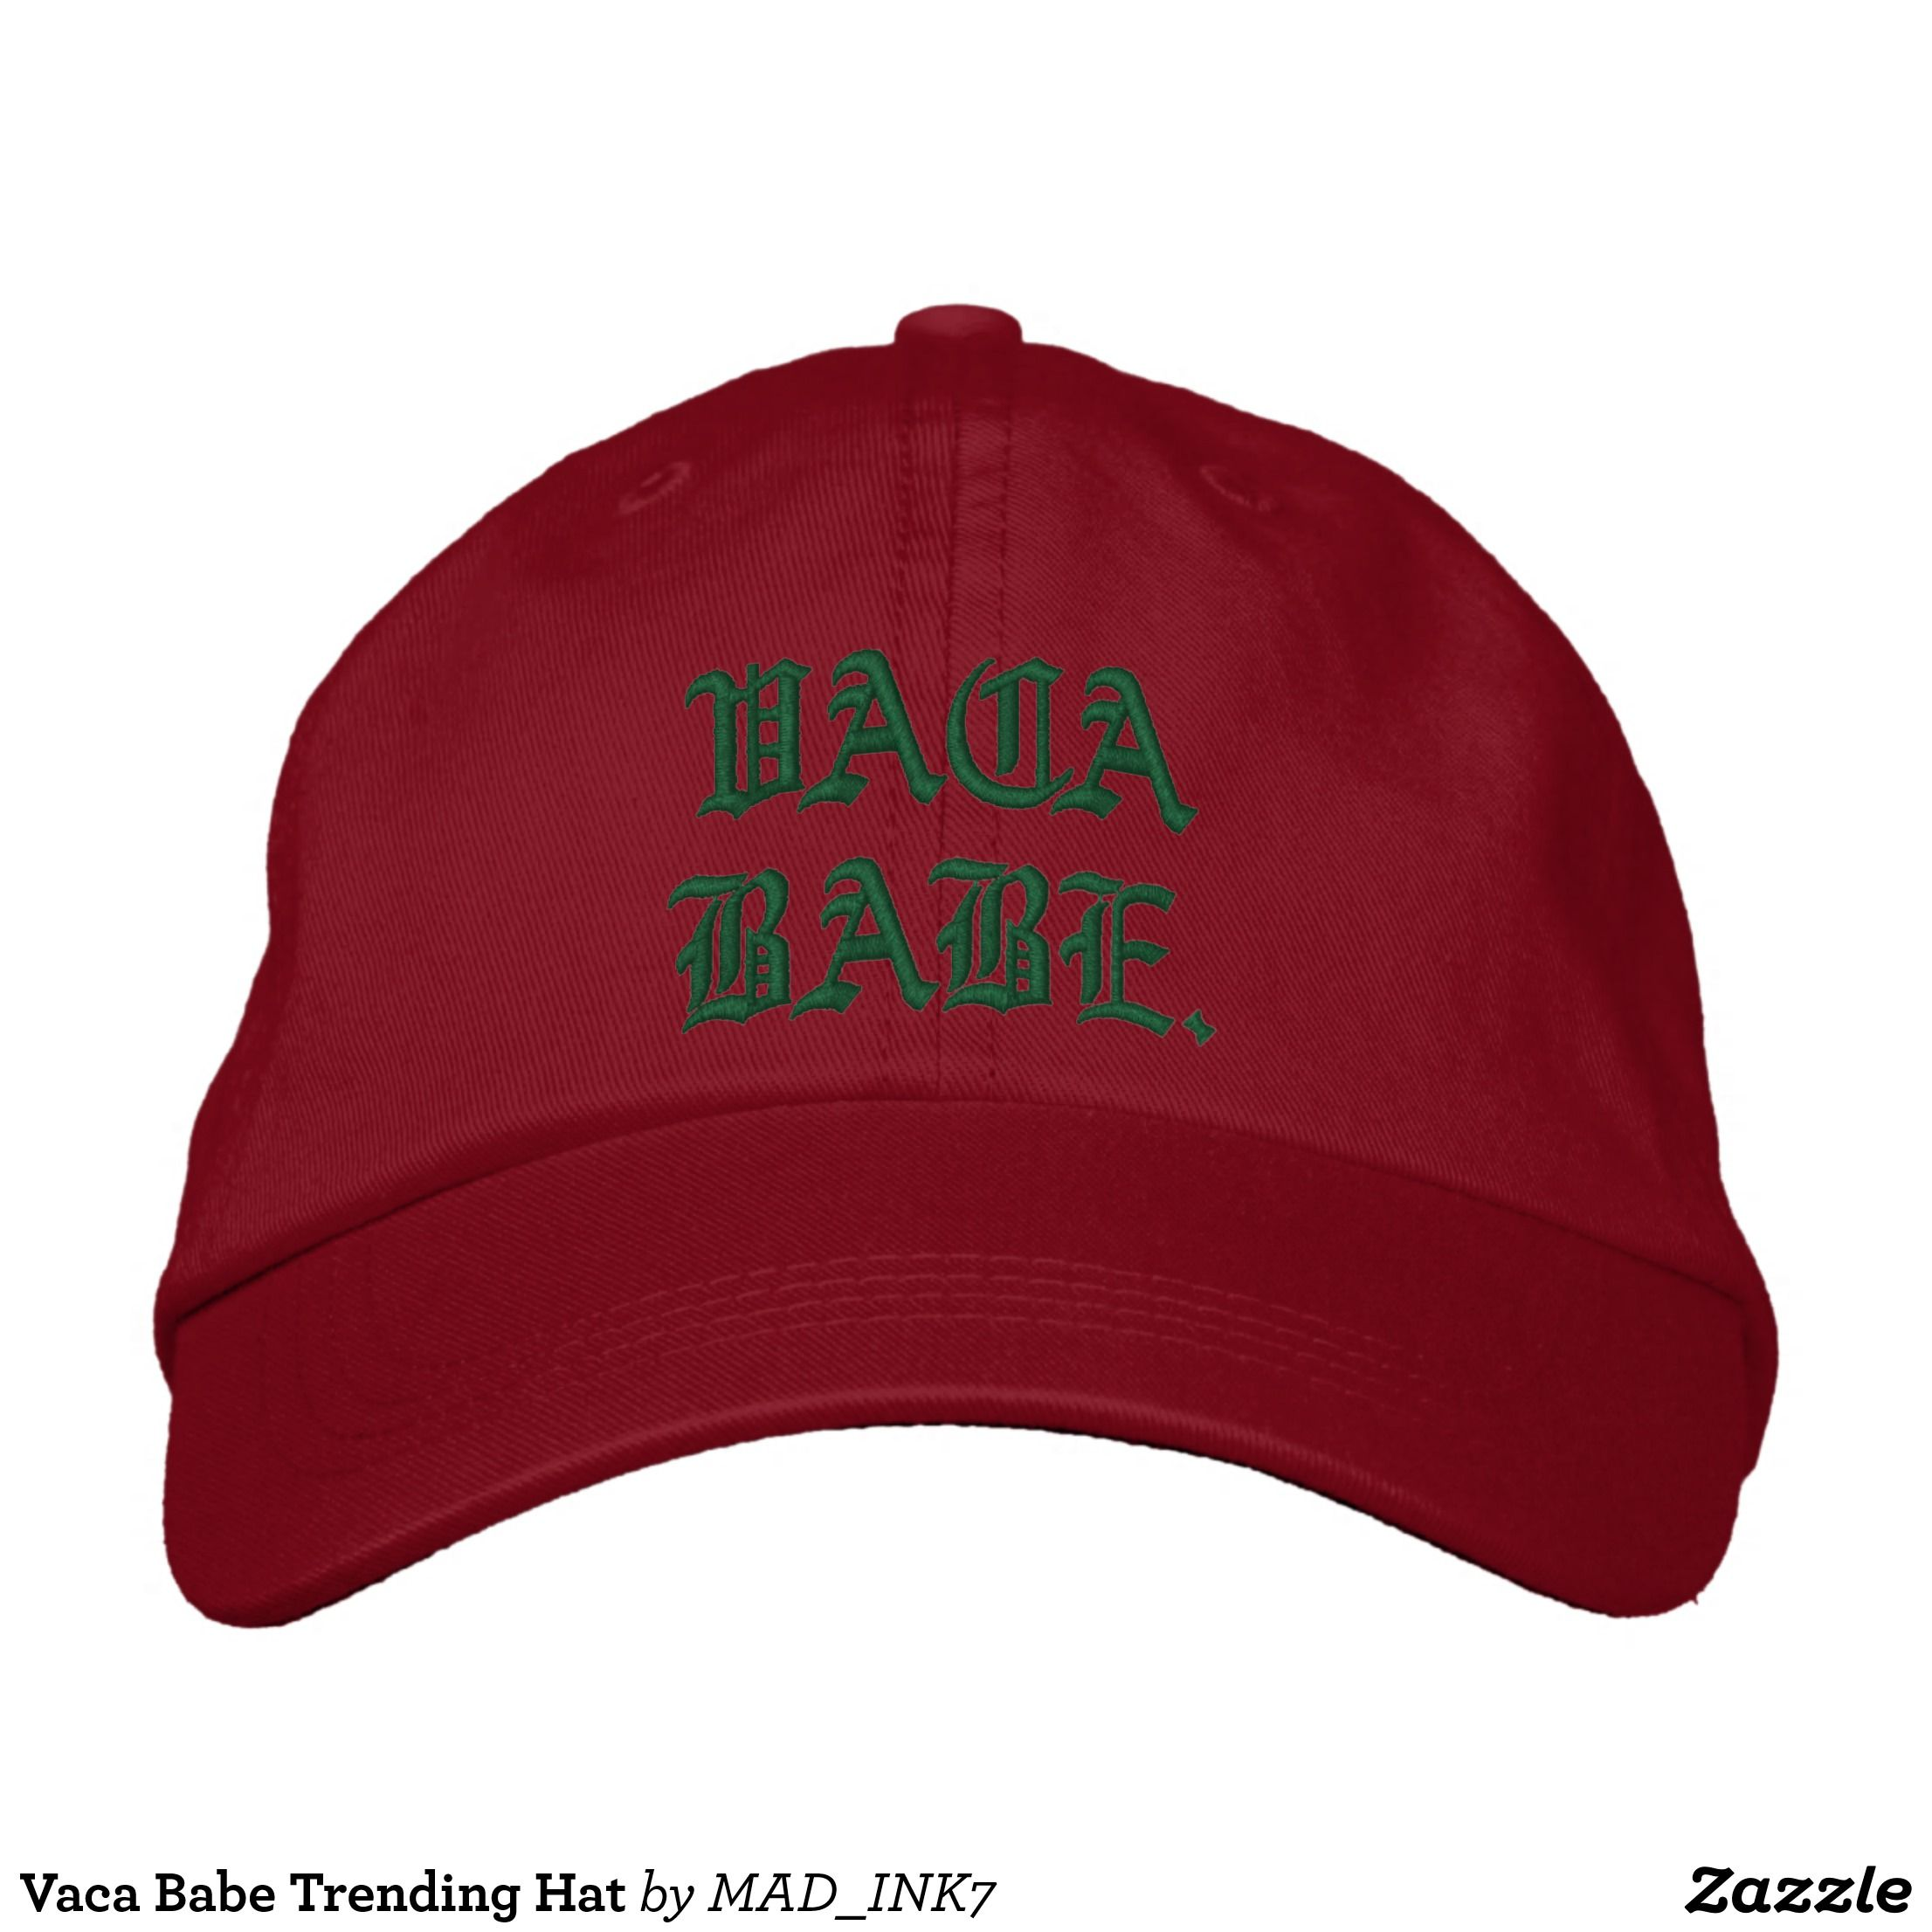 Vaca Babe Trending Hat - Urban Hunter Fisher Farmer Redneck Hats By  Talented Fashion And Graphic Designers -  hats  truckerhat  mensfashion   apparel ... 671a94cac